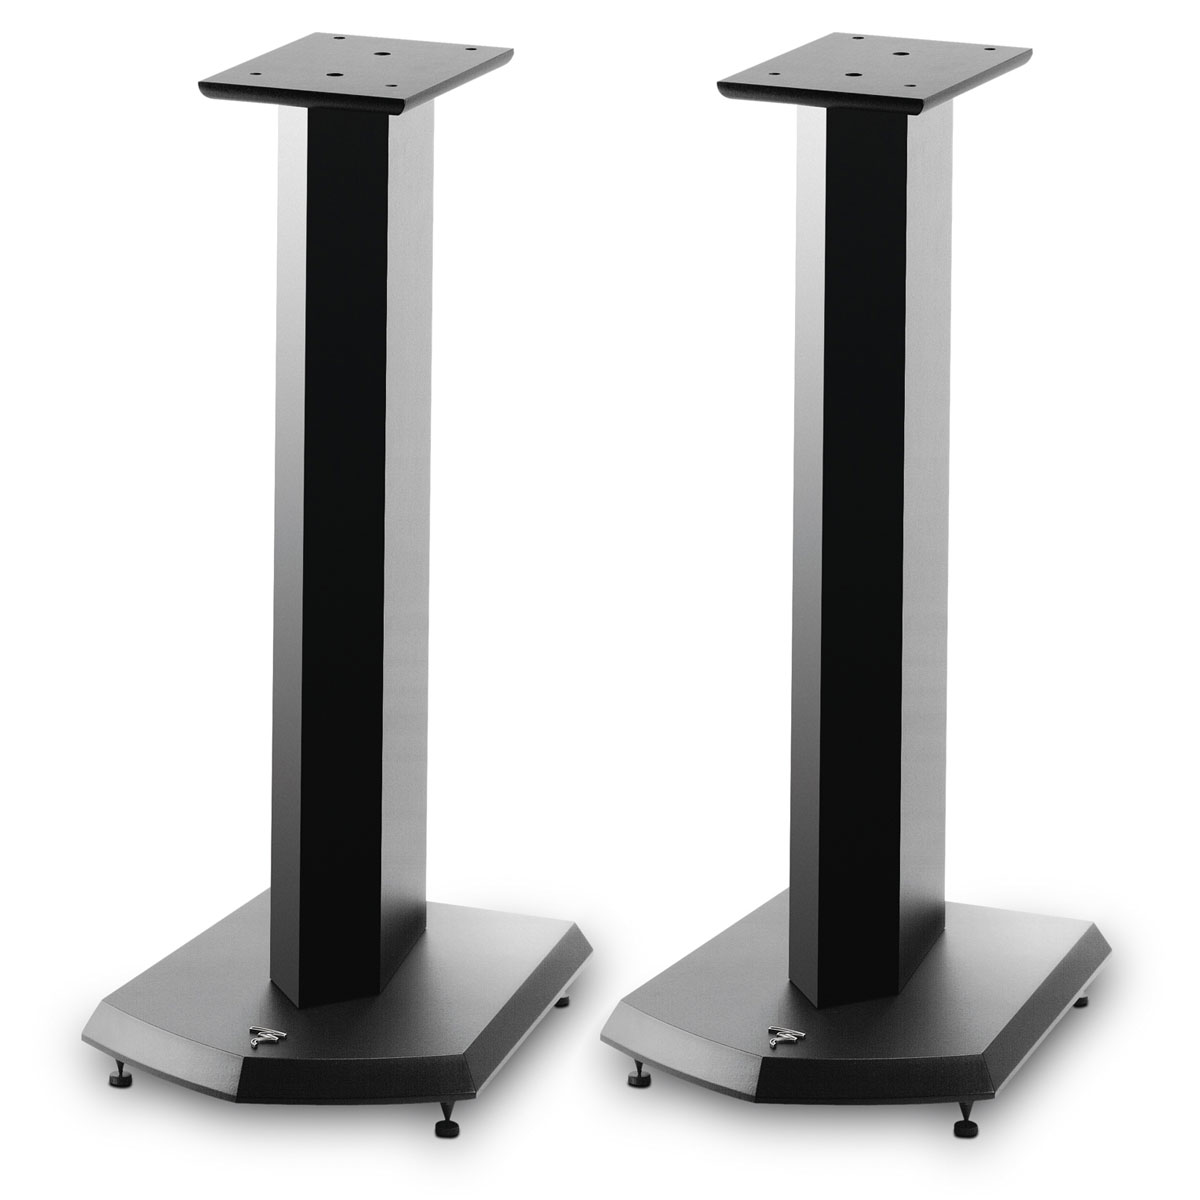 focal chorus s 700 v pied support enceinte focal sur ldlc. Black Bedroom Furniture Sets. Home Design Ideas